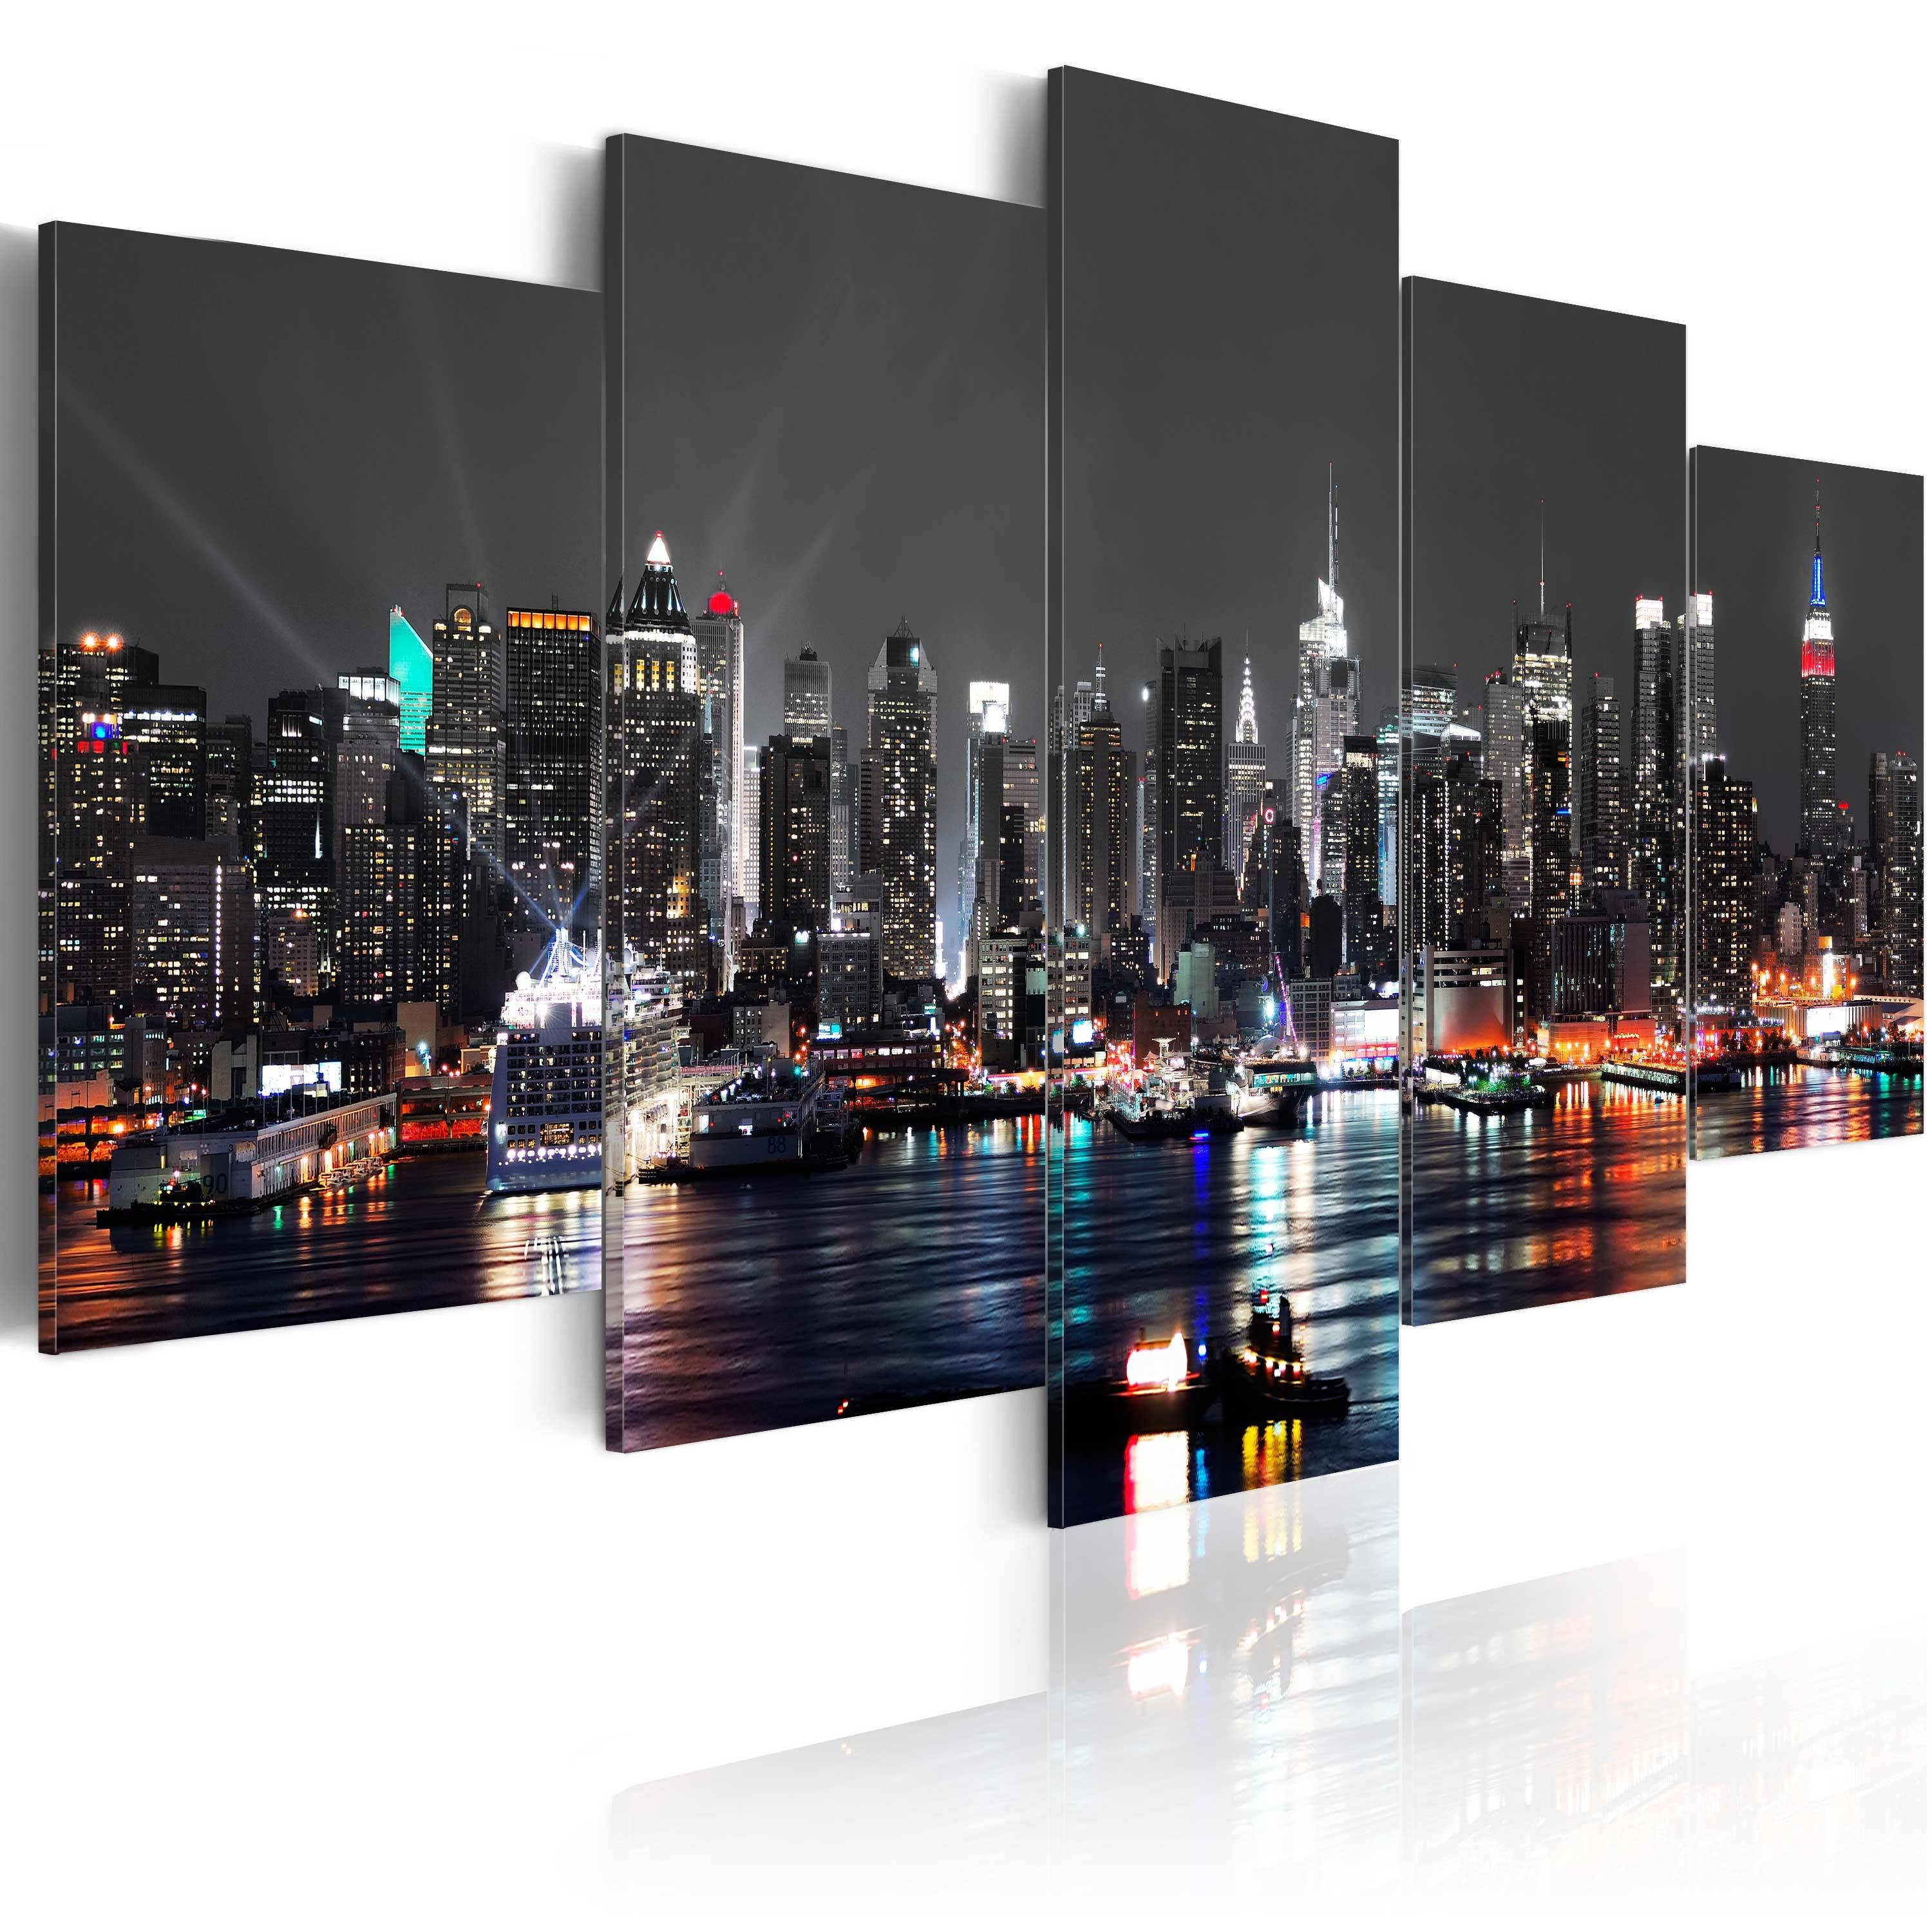 New York Wall Pictures | Ebay With Regard To Most Popular New York Skyline Canvas Black And White Wall Art (View 11 of 20)